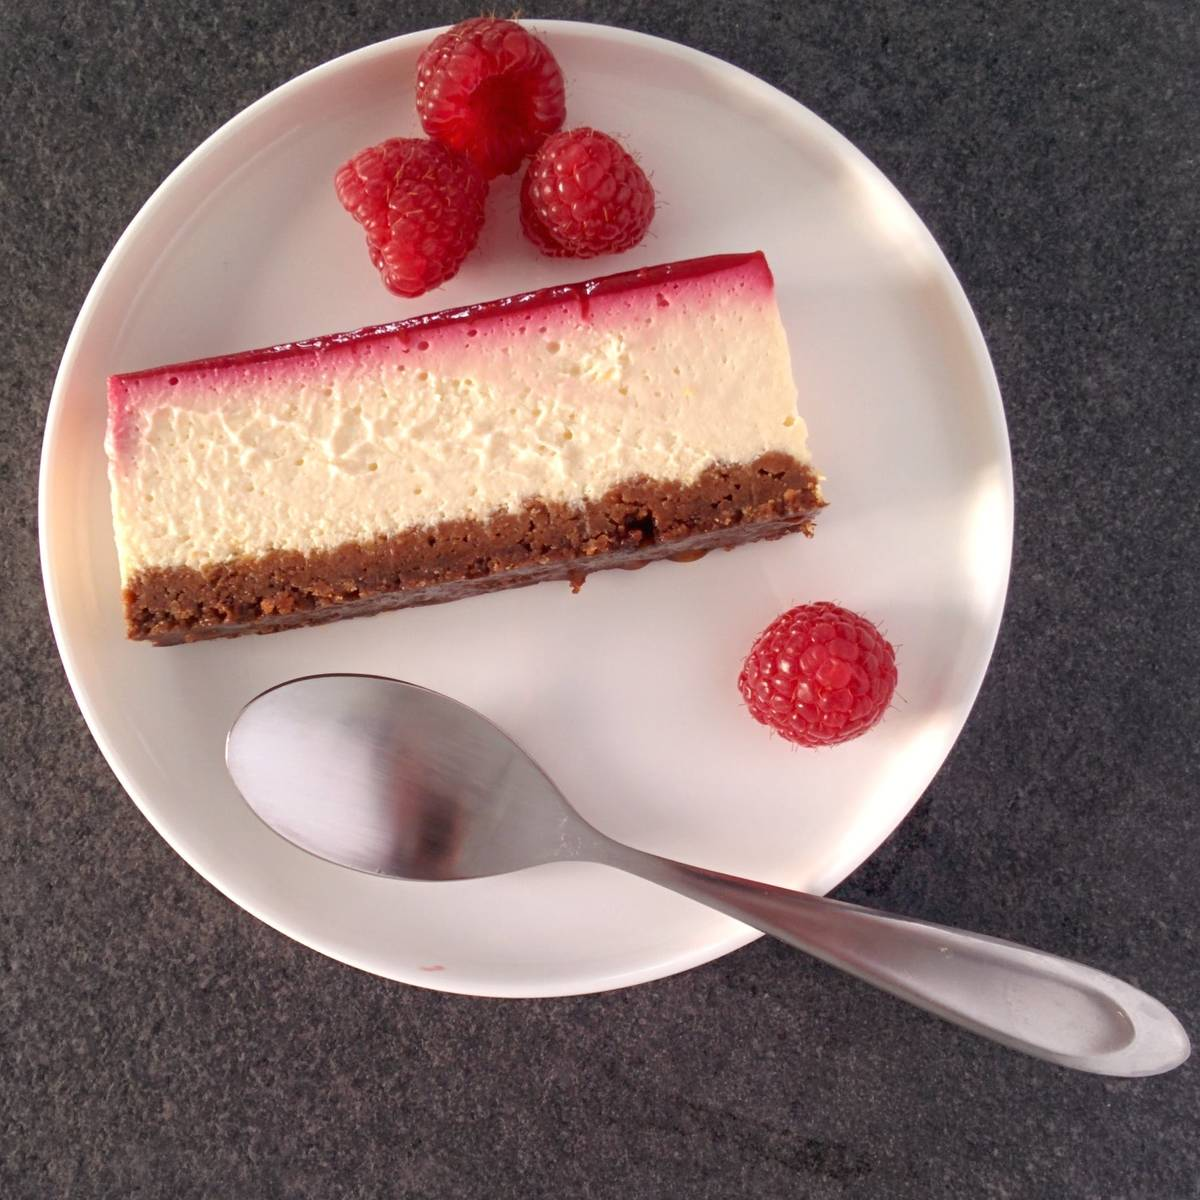 Recette facile du cheesecake aux fruits rouges